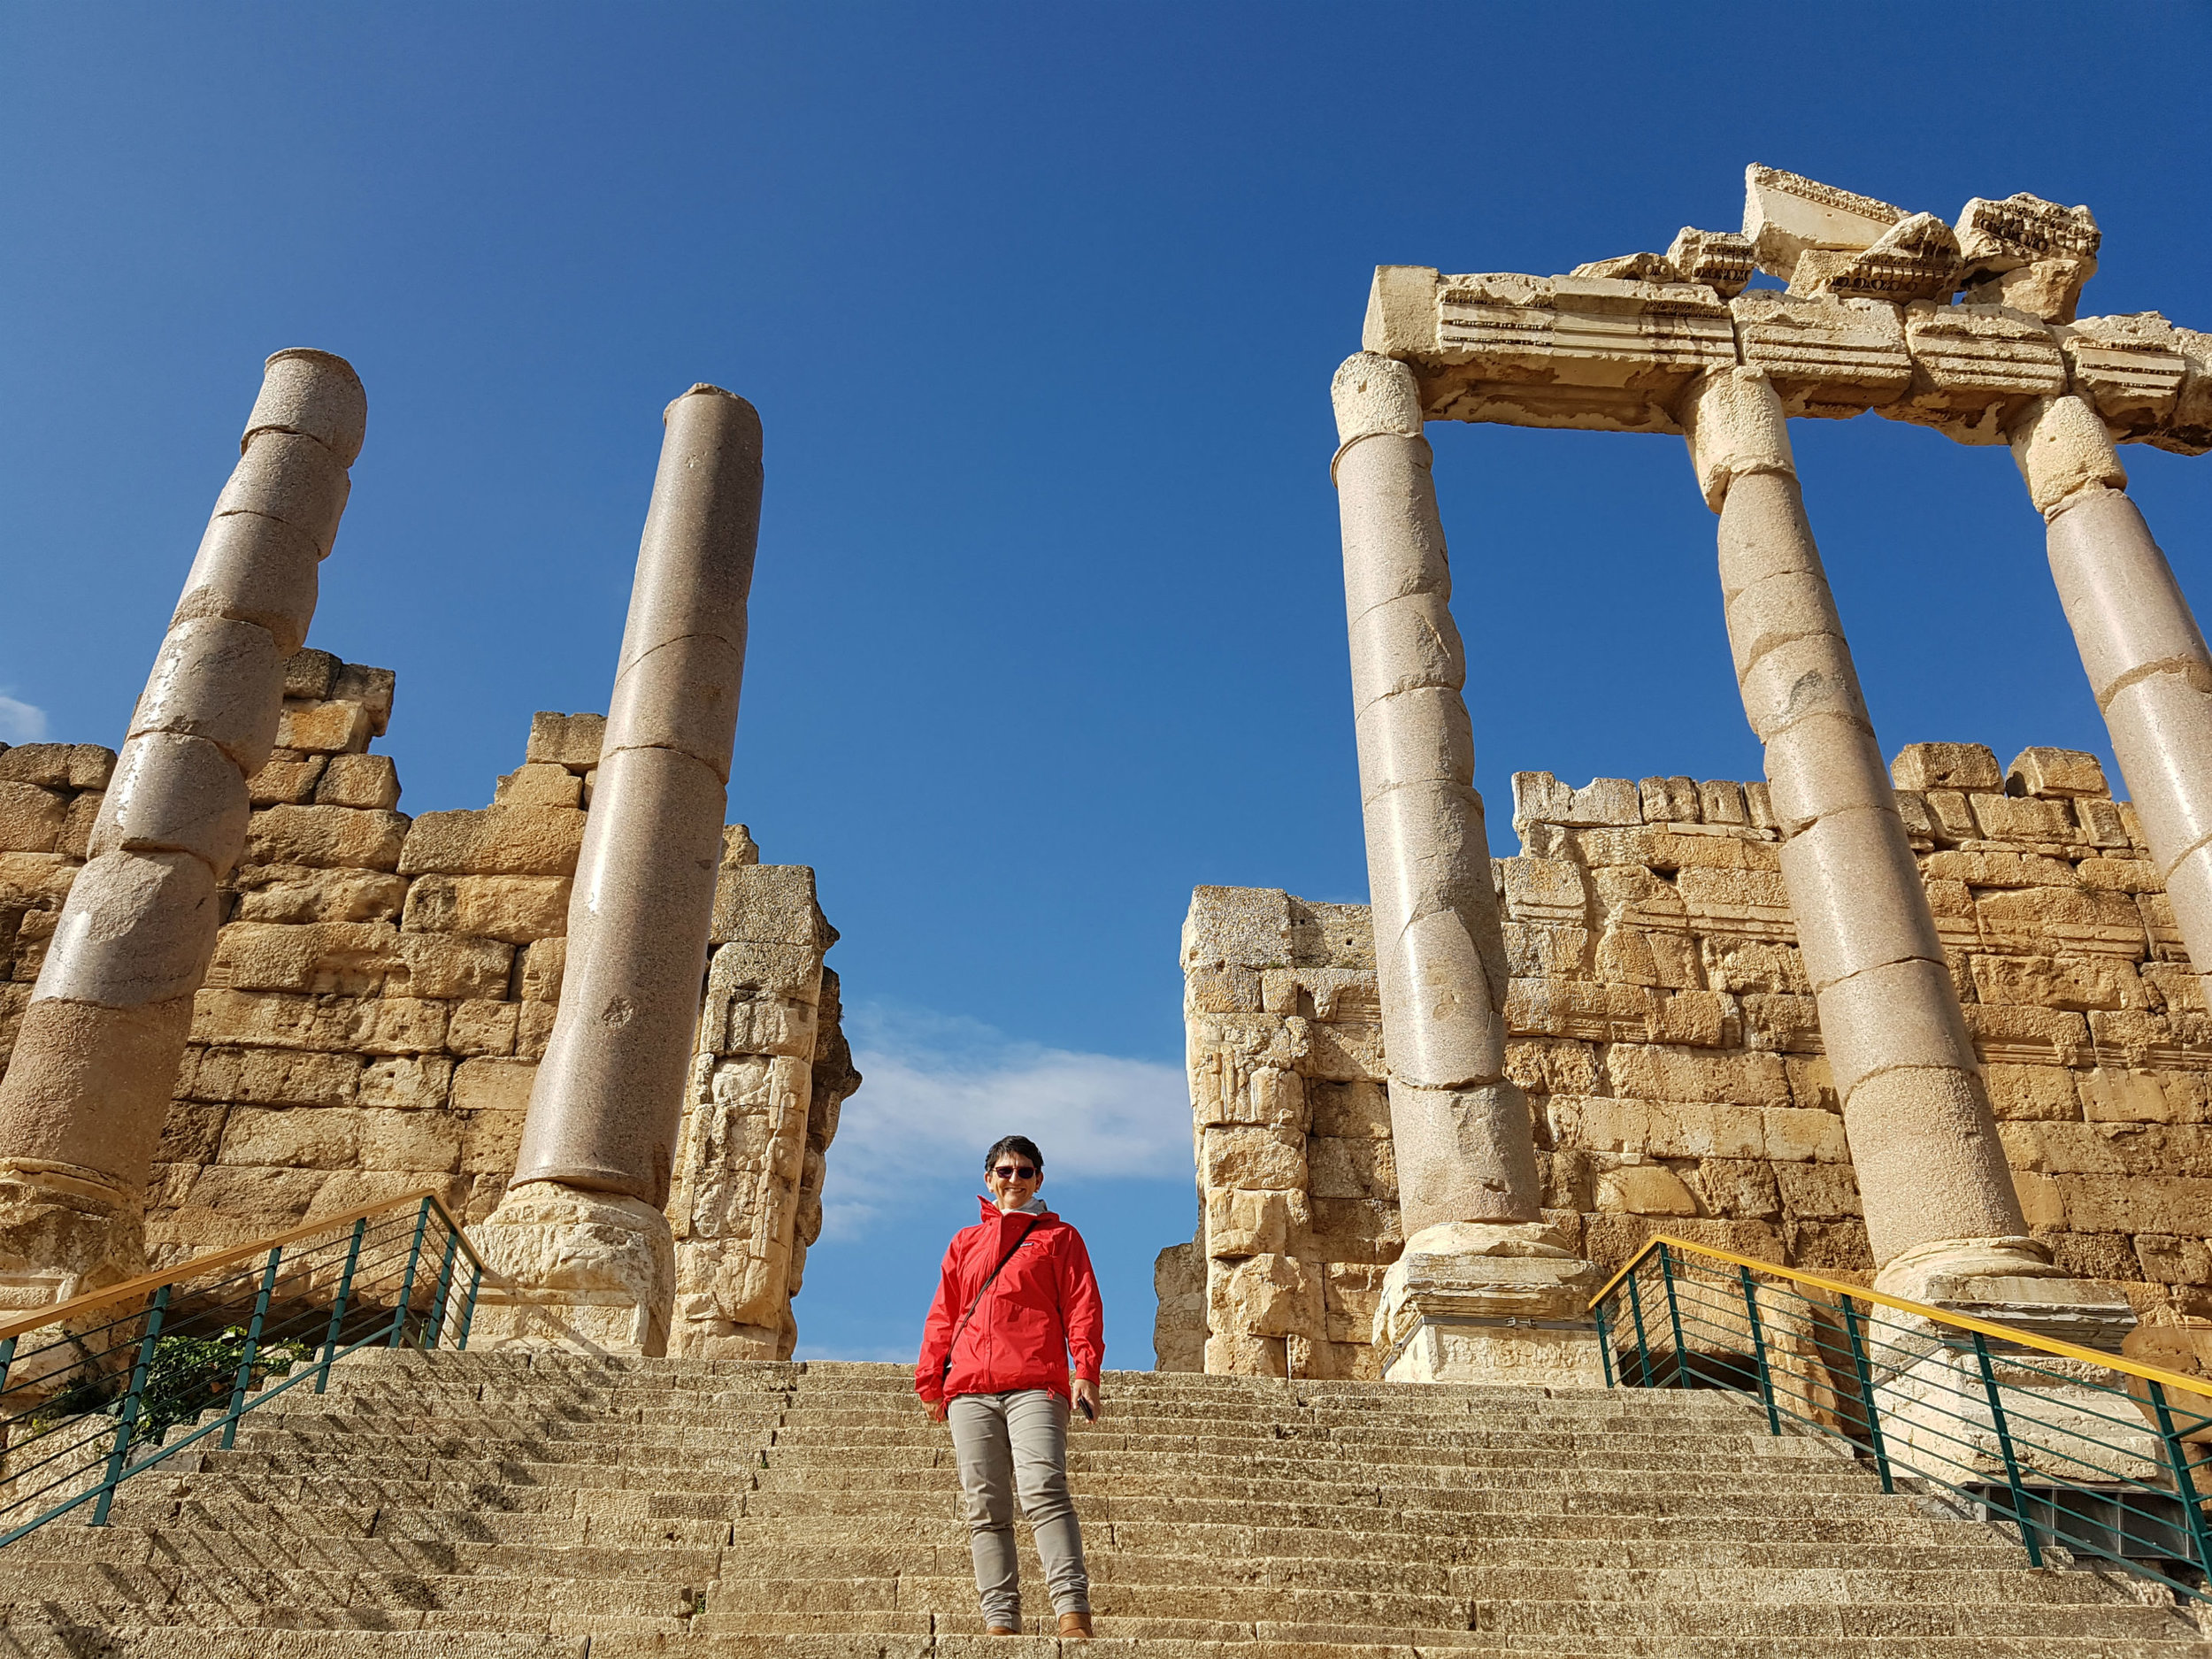 The steps leading to the Propylaea